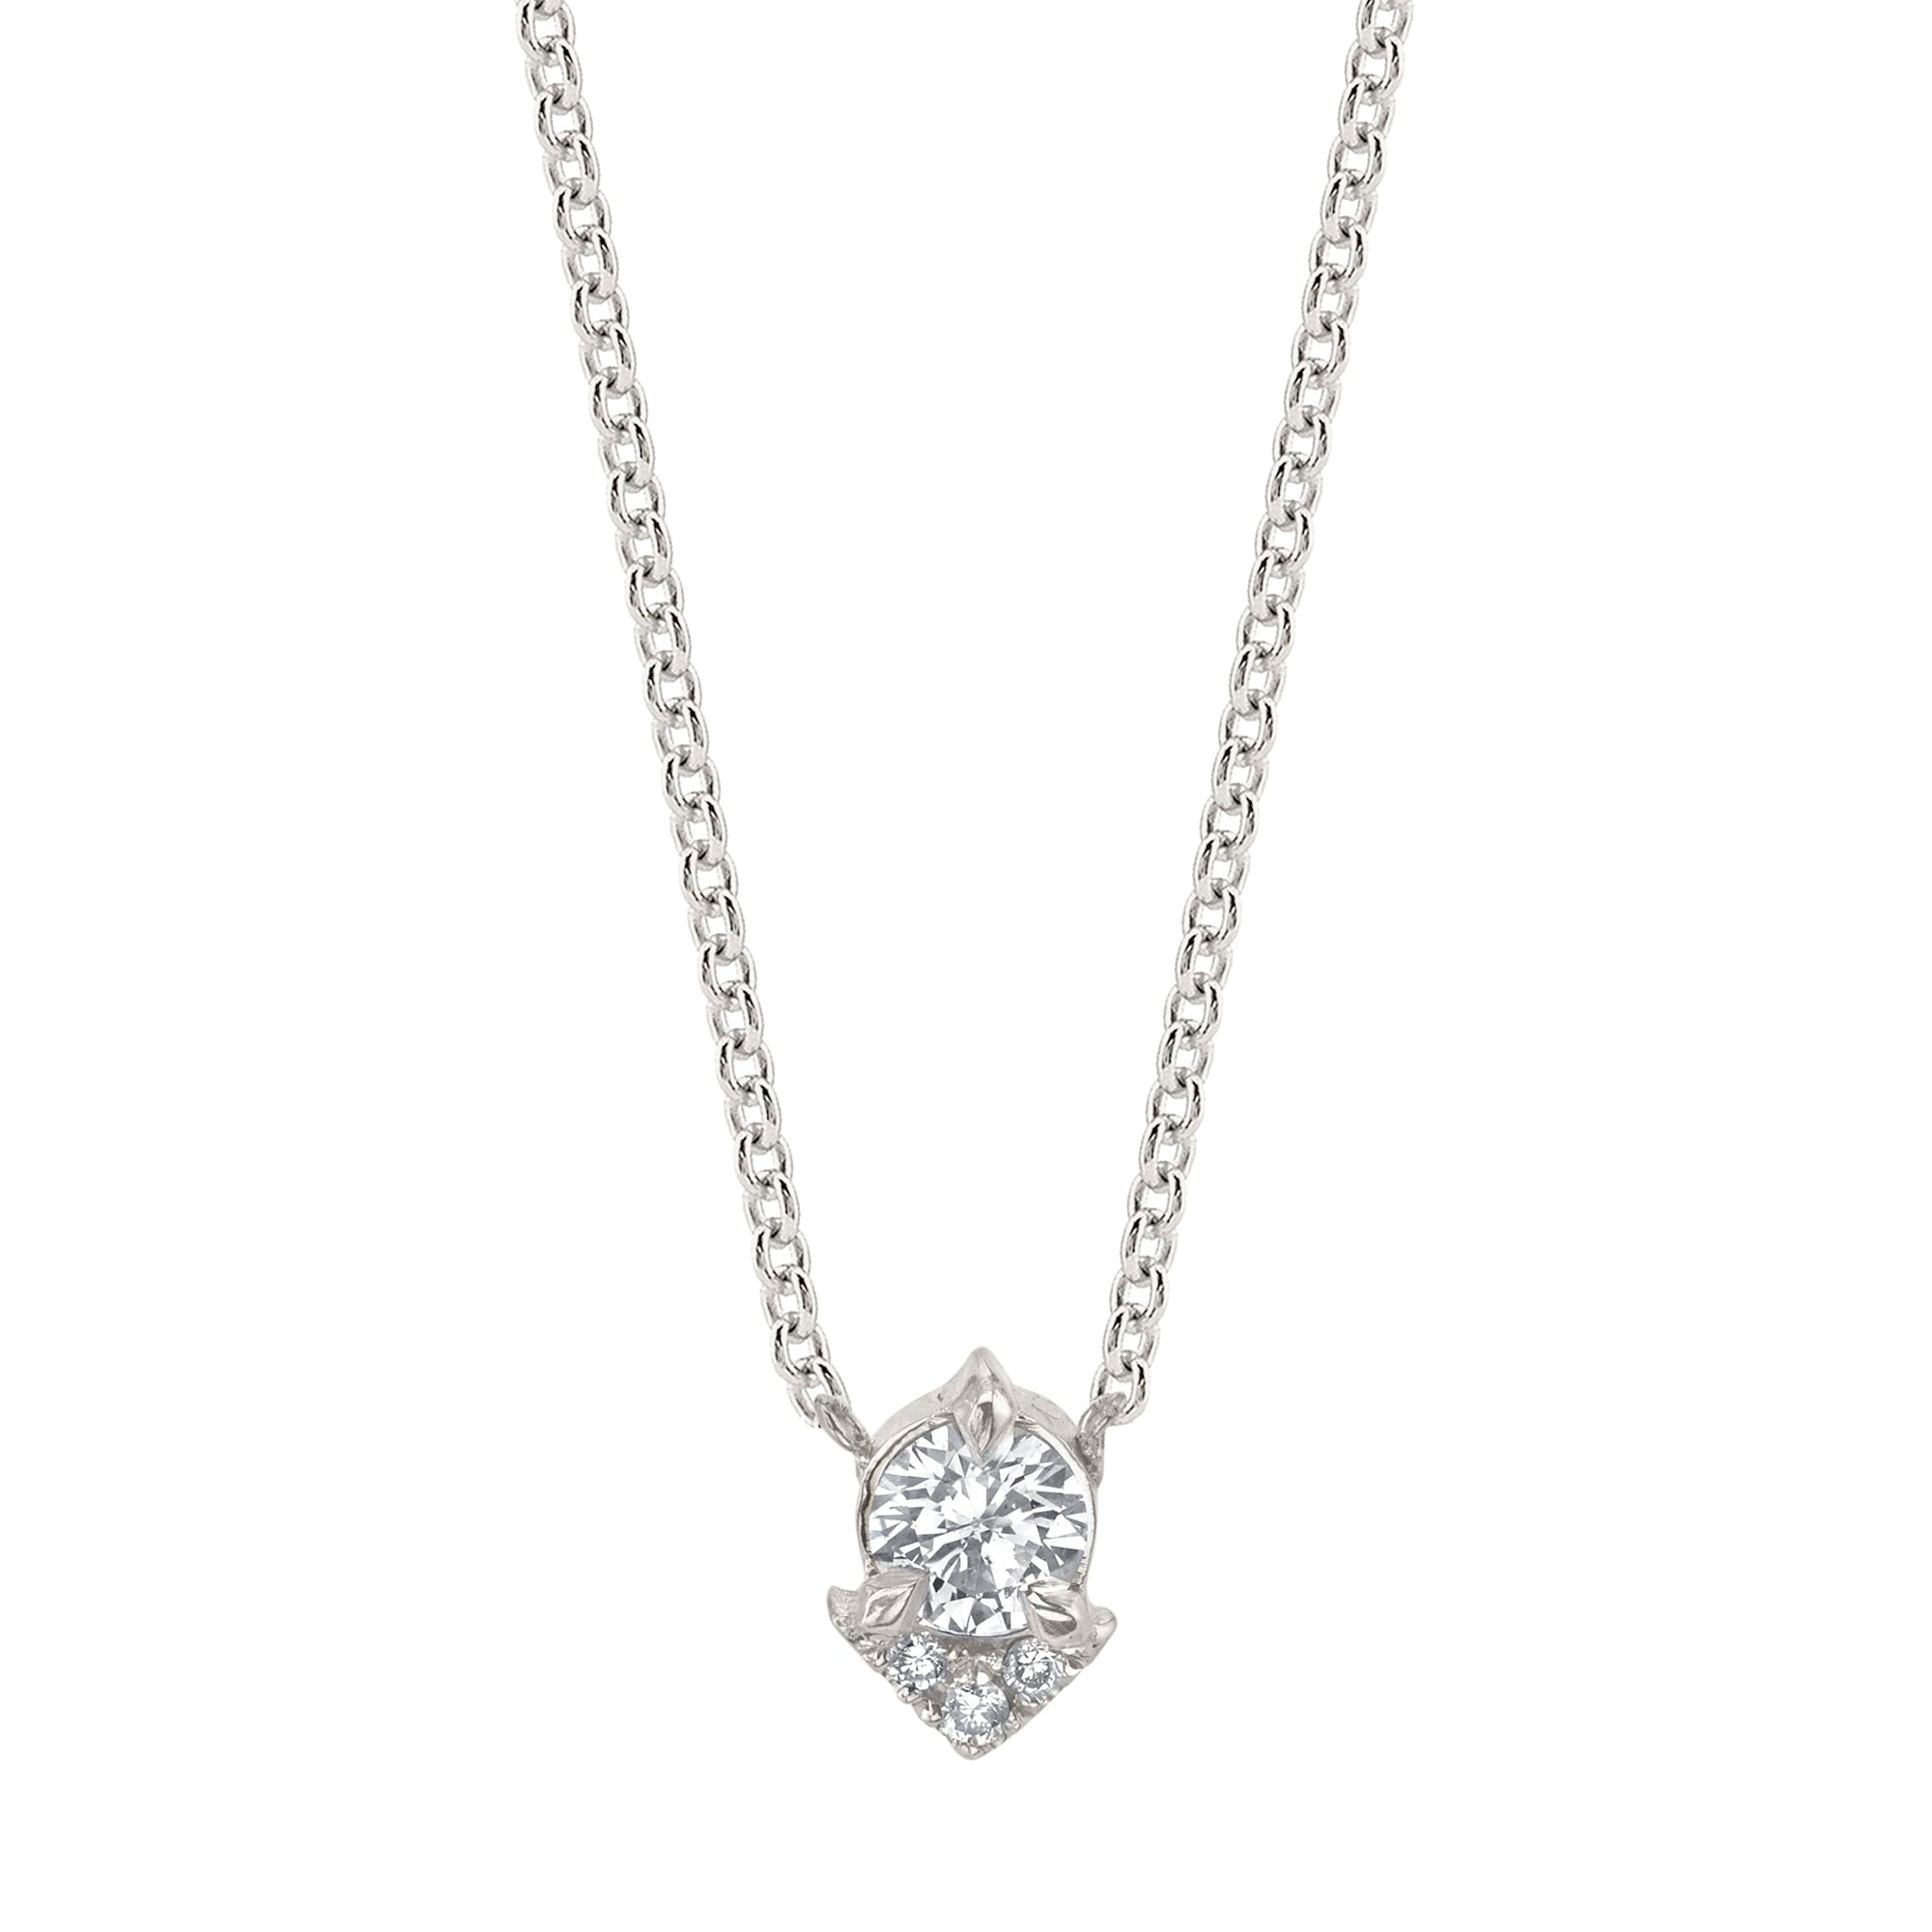 Diamond Spike Necklace by Lizzie Mandler for Broken English Jewelry